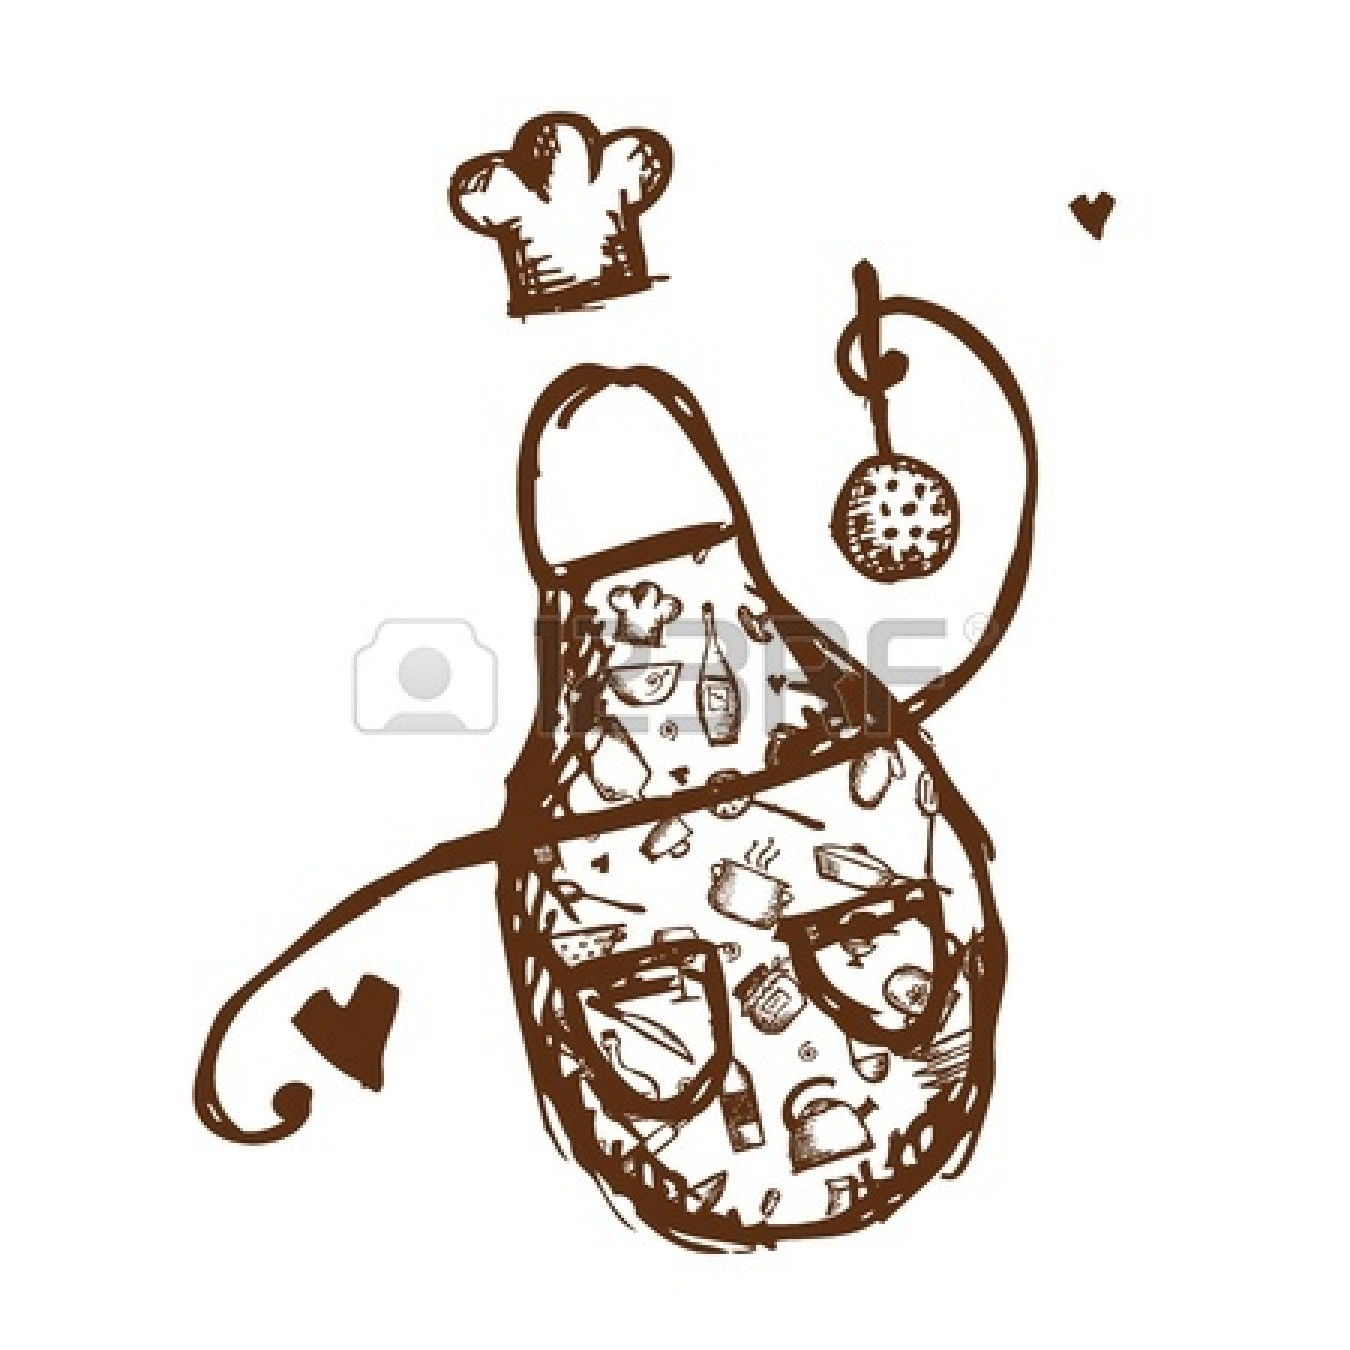 Cooking Utensils Drawing | Clipart Panda - Free Clipart Images